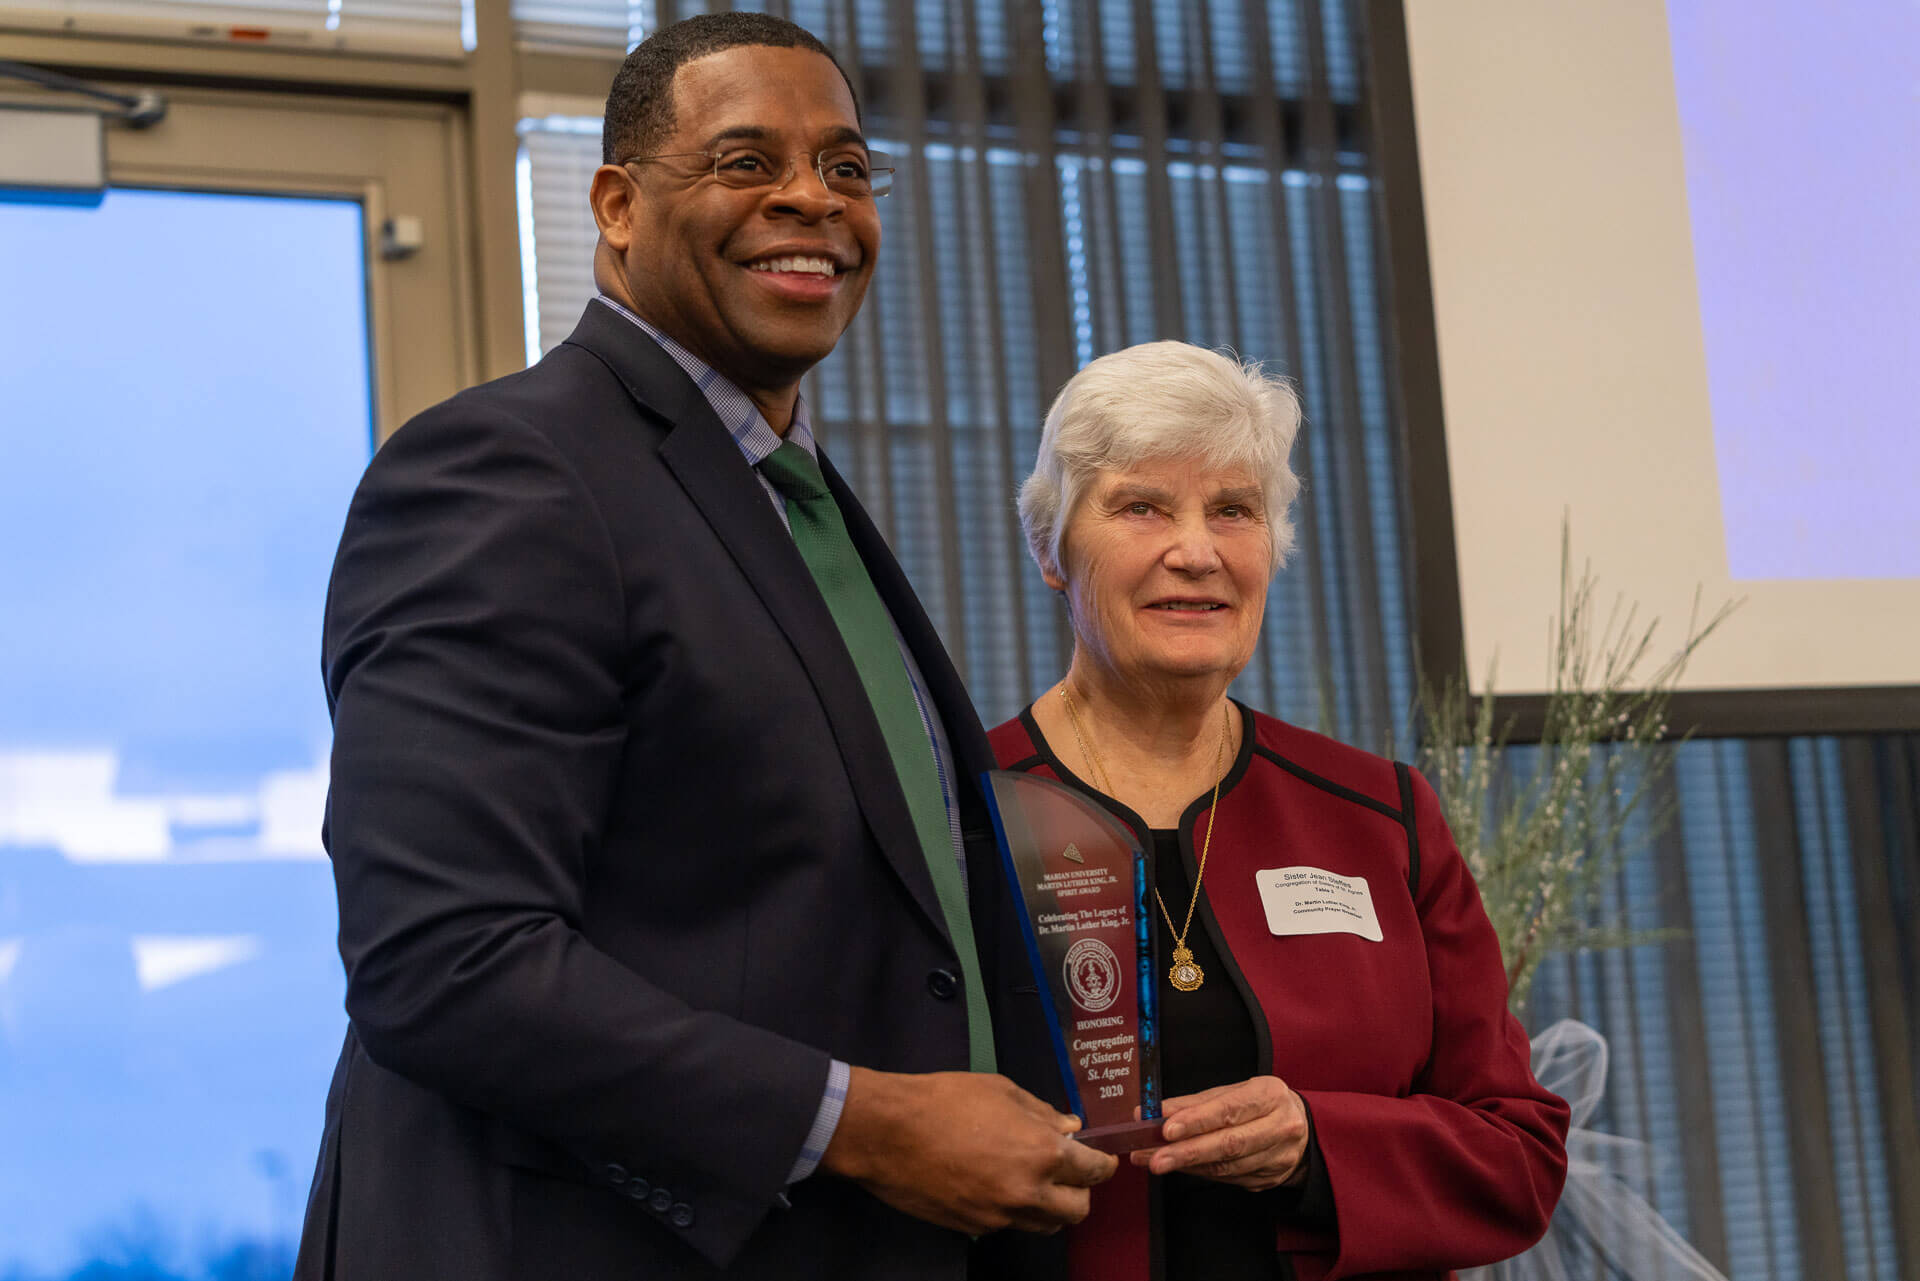 Sister Jean with Dr. Koonce